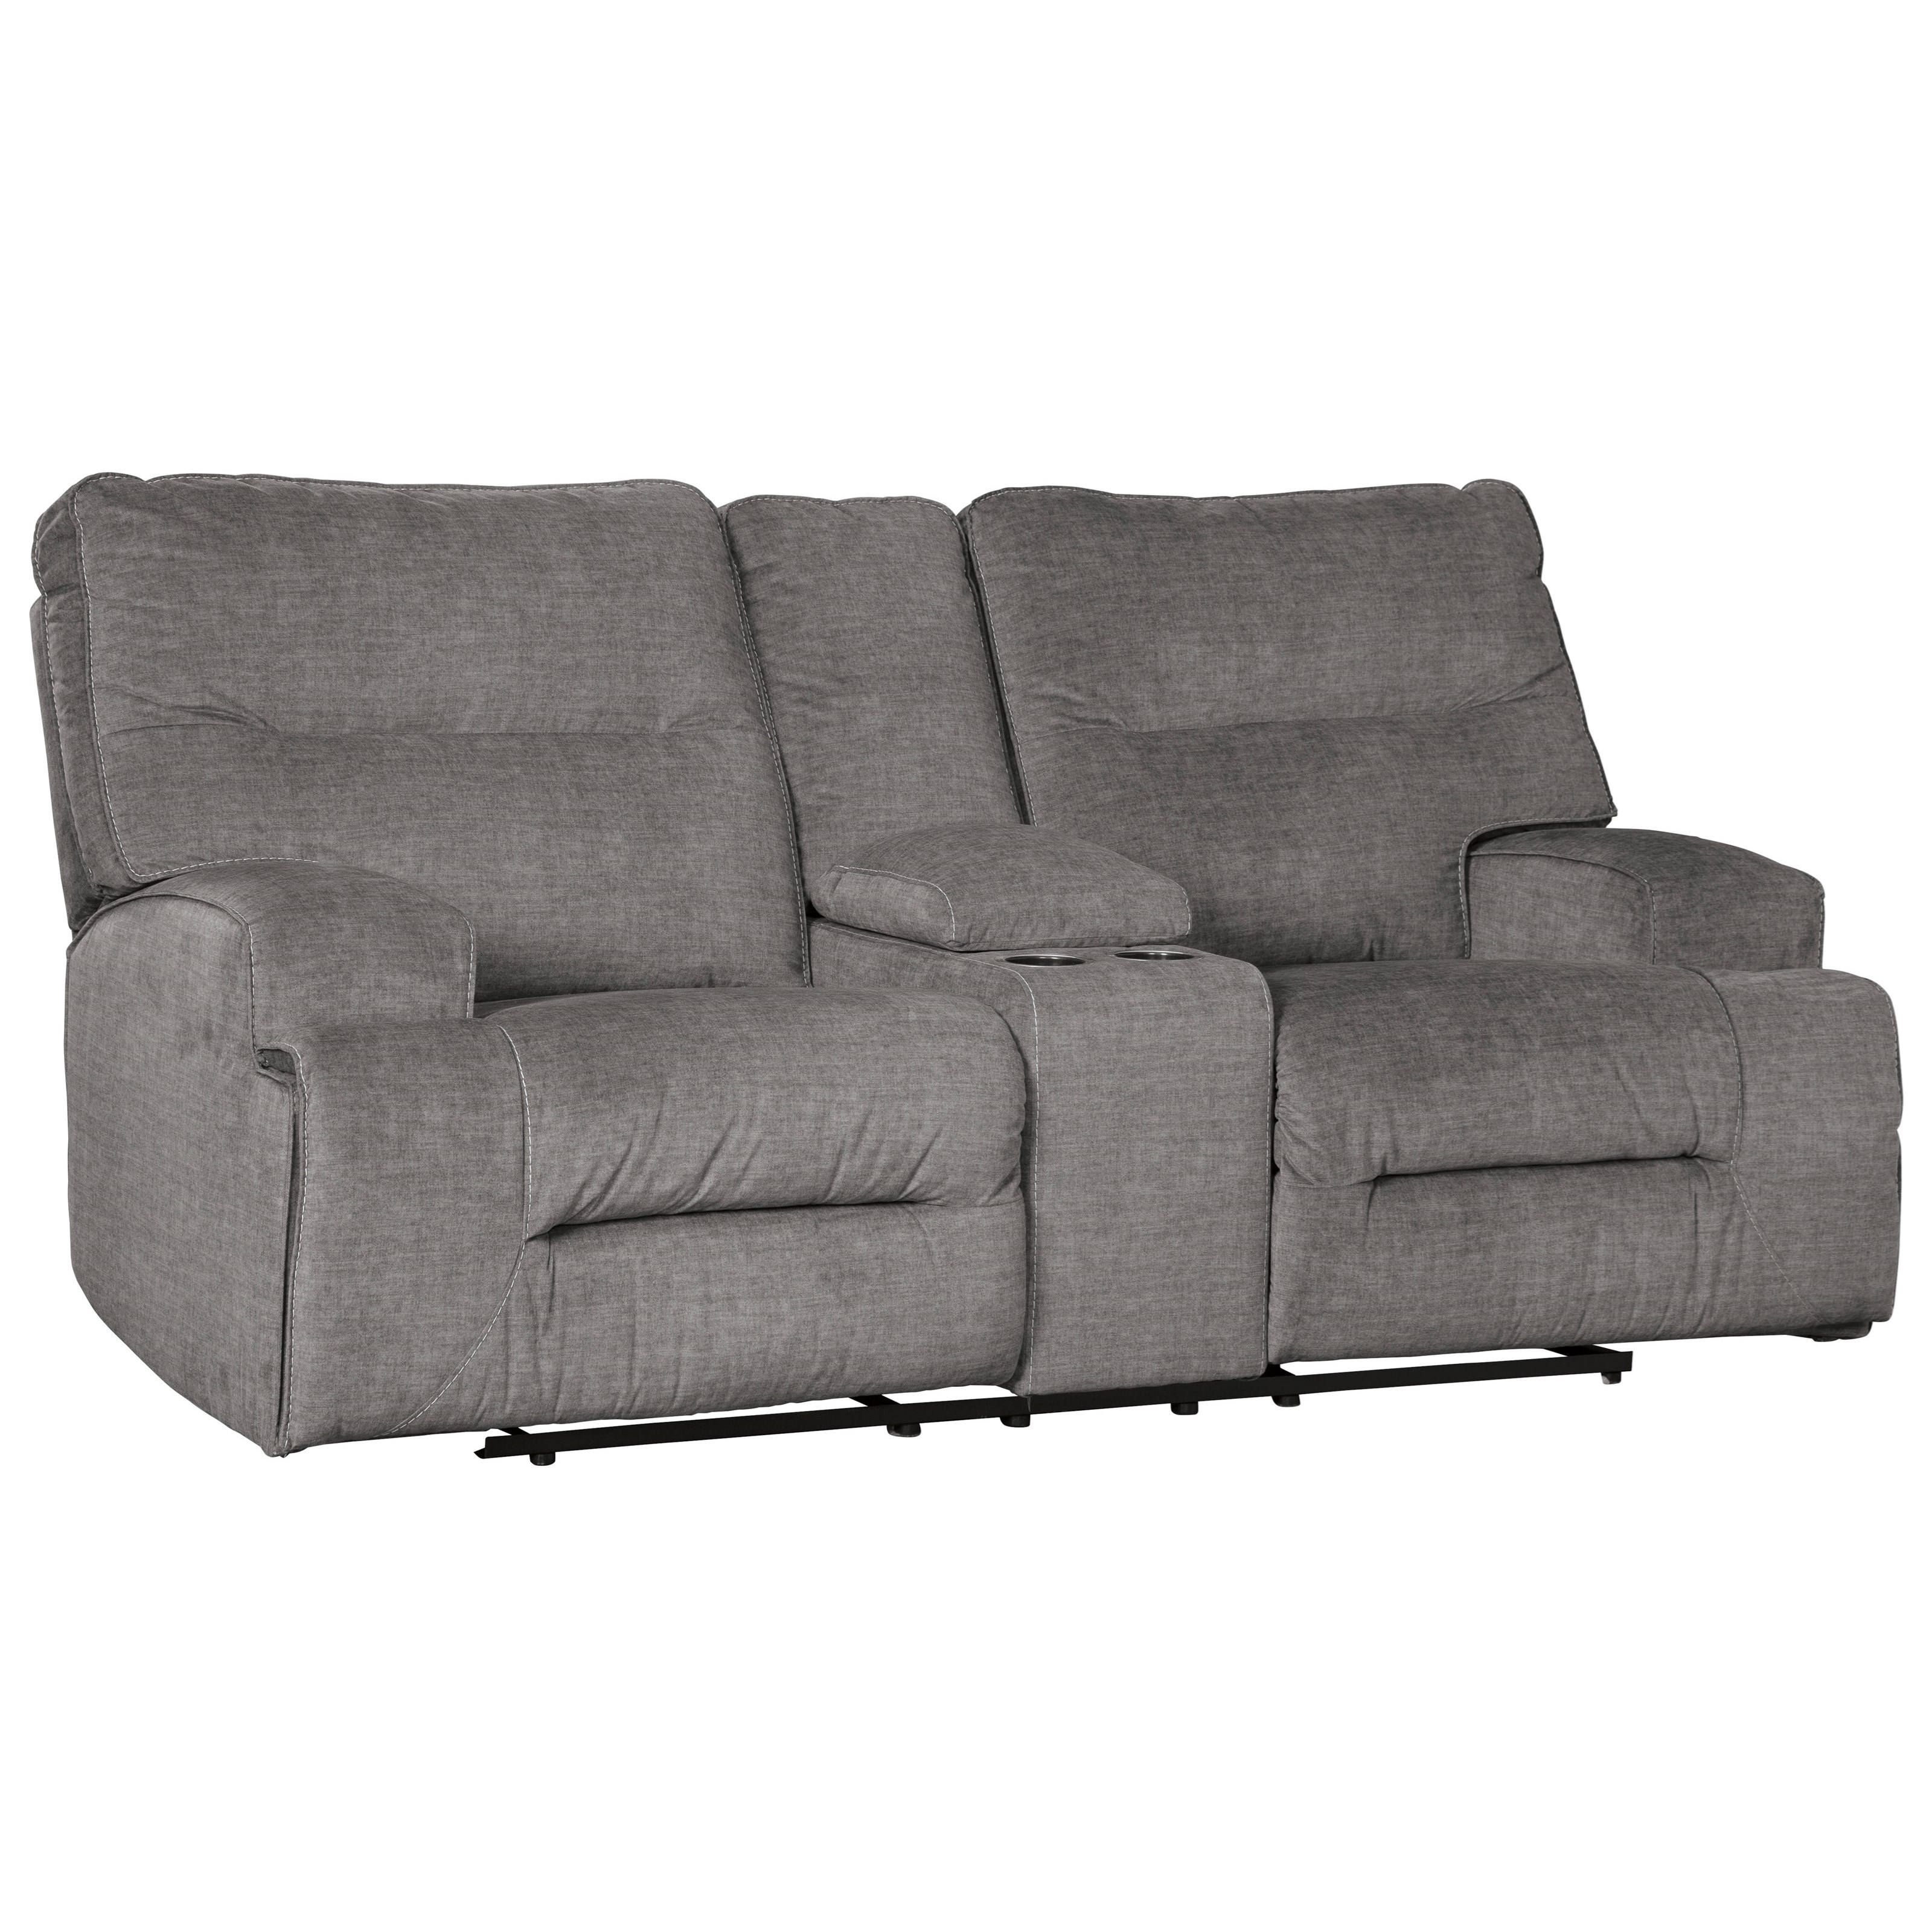 Coombs Double Reclining Loveseat w/ Console by Benchcraft at Value City Furniture